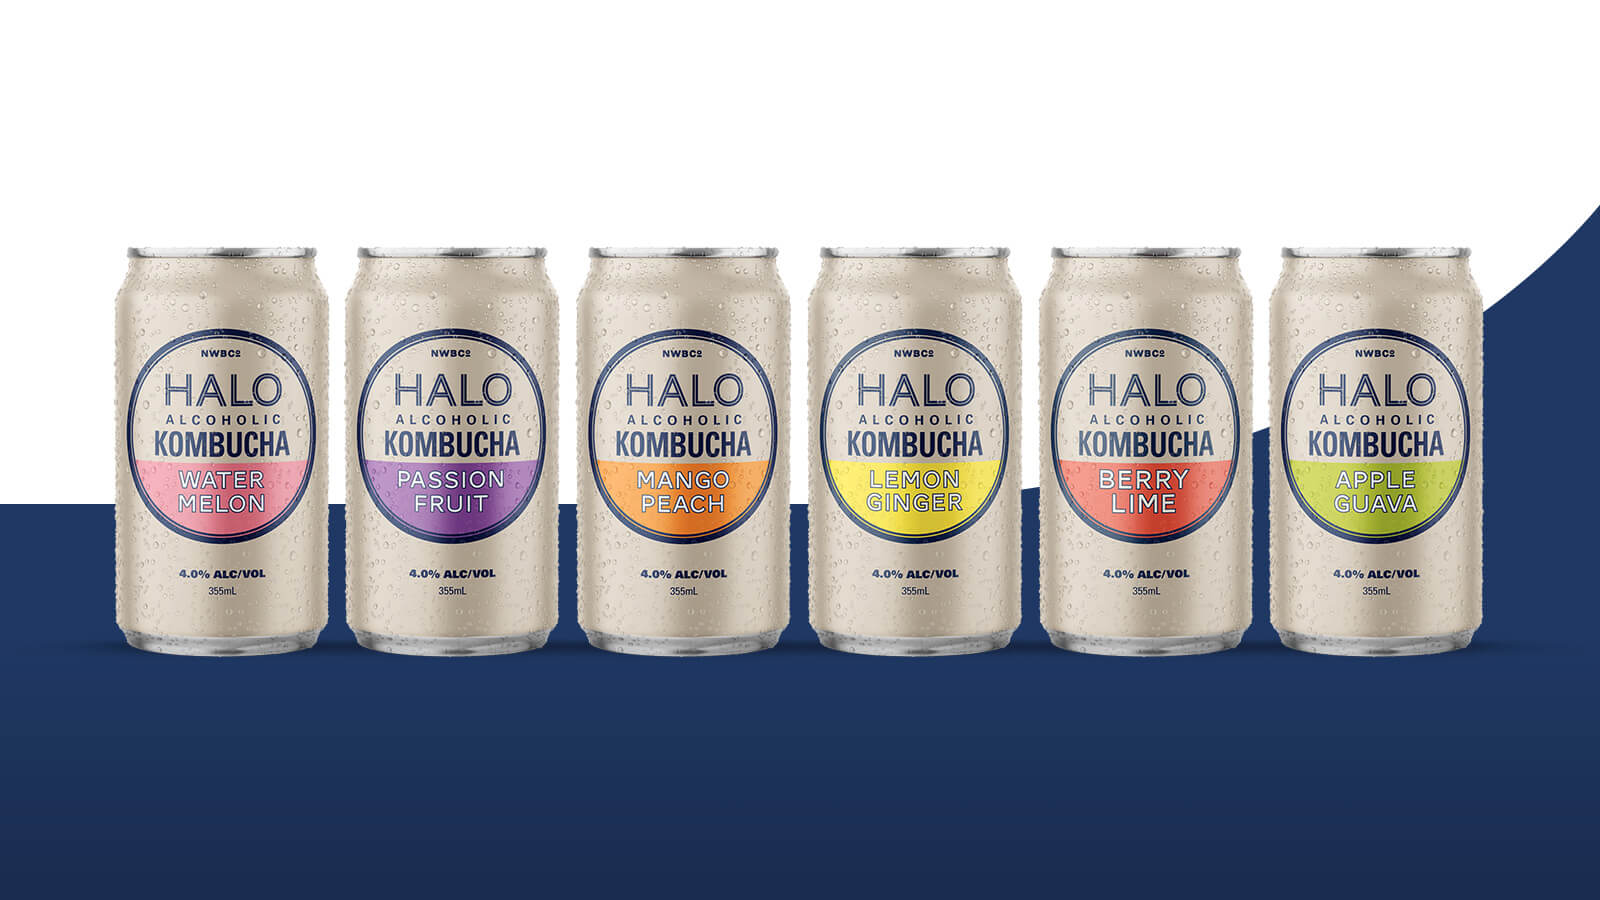 Halo Alcoholic Kombucha | Six HALO cans showing all flavours  | Devotion